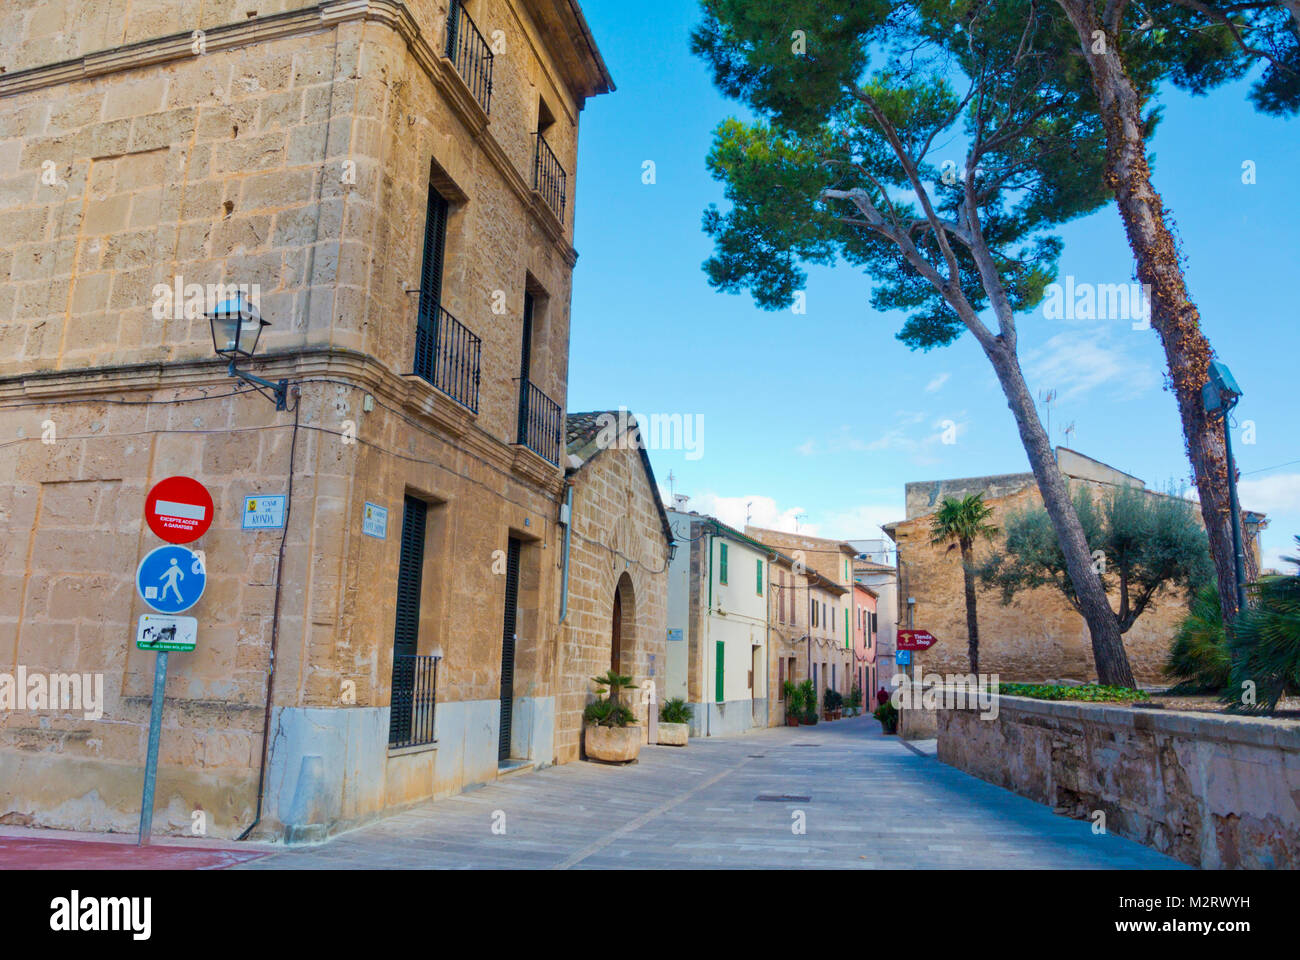 Carrer de Sant Jaume, old town, Alcudia, Mallorca, Balearic islands, Spain - Stock Image